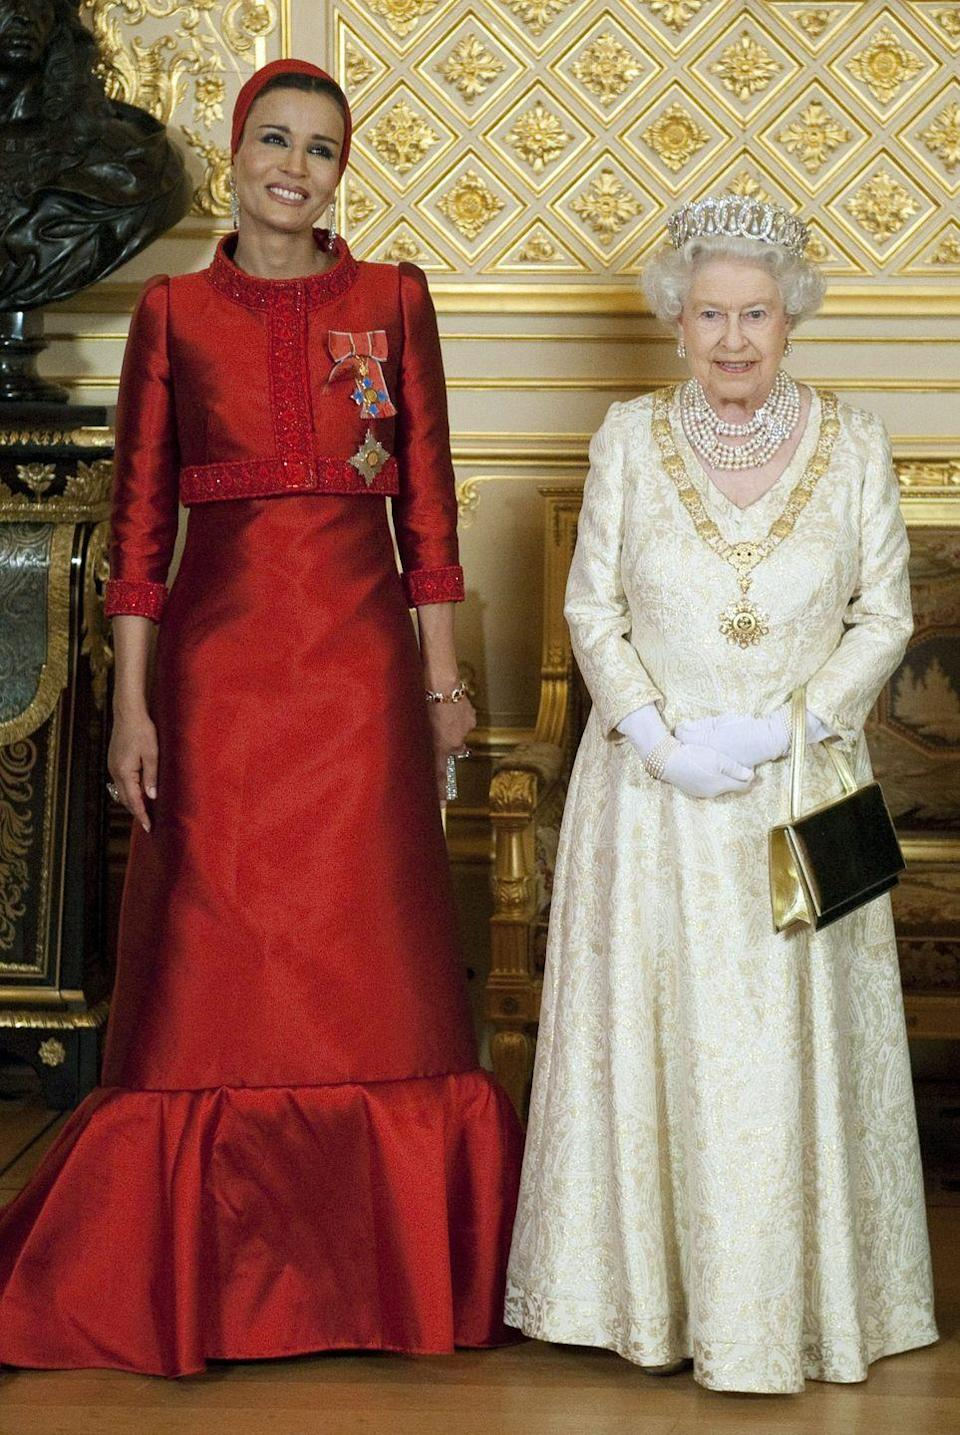 <p>The wife of Qatar's Emir Sheikh Hamad bin Khalifa al Thani, Her Highness Sheikha Mozah bint Nasser Al Missned currently lives in Doha, Qatar and is known worldwide for customizing couture looks to meet Middle Eastern modesty standards. </p>